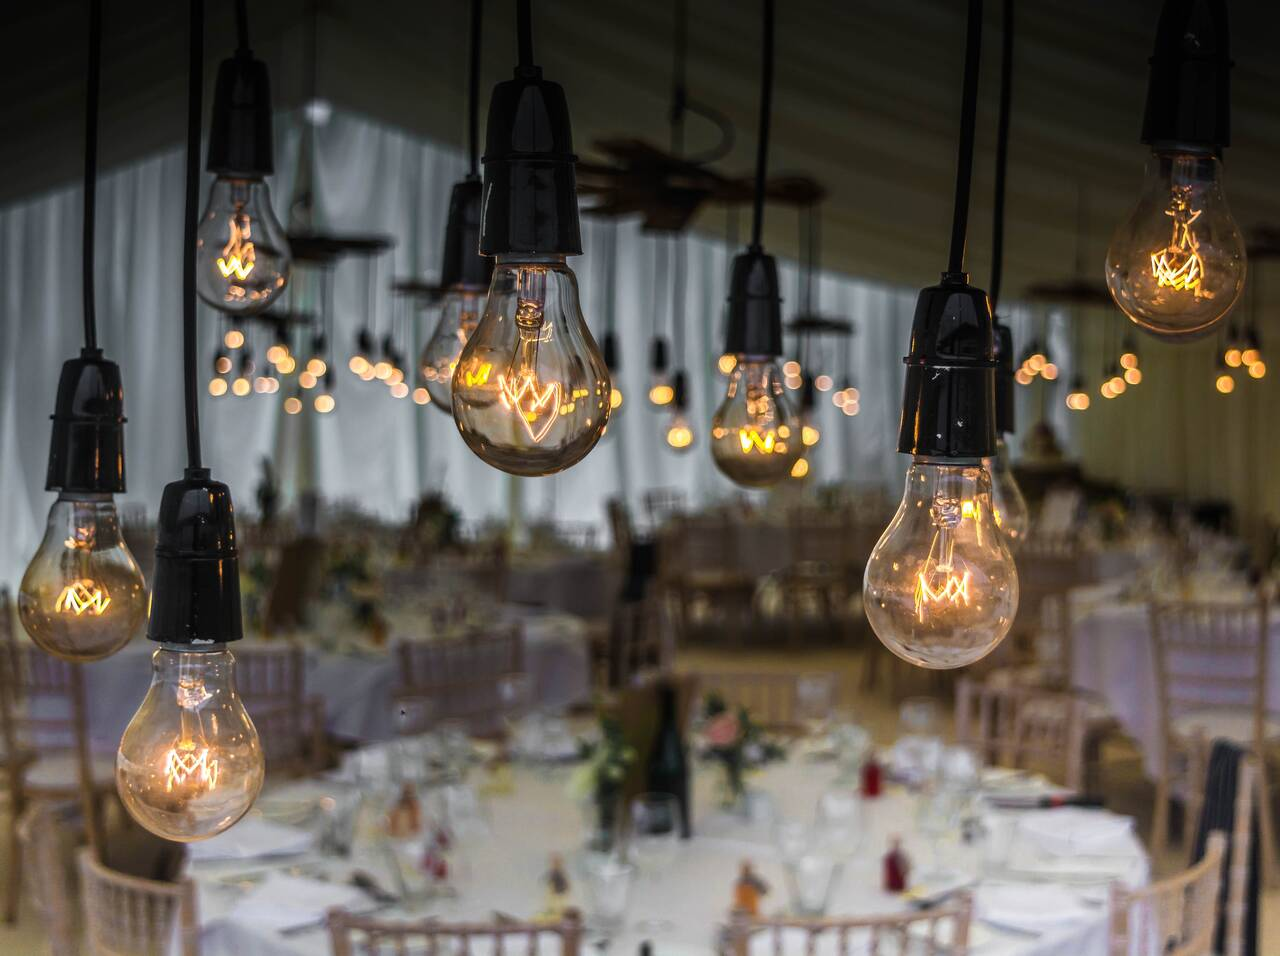 wedding, bulbs, lighting - Alf an der Mosel